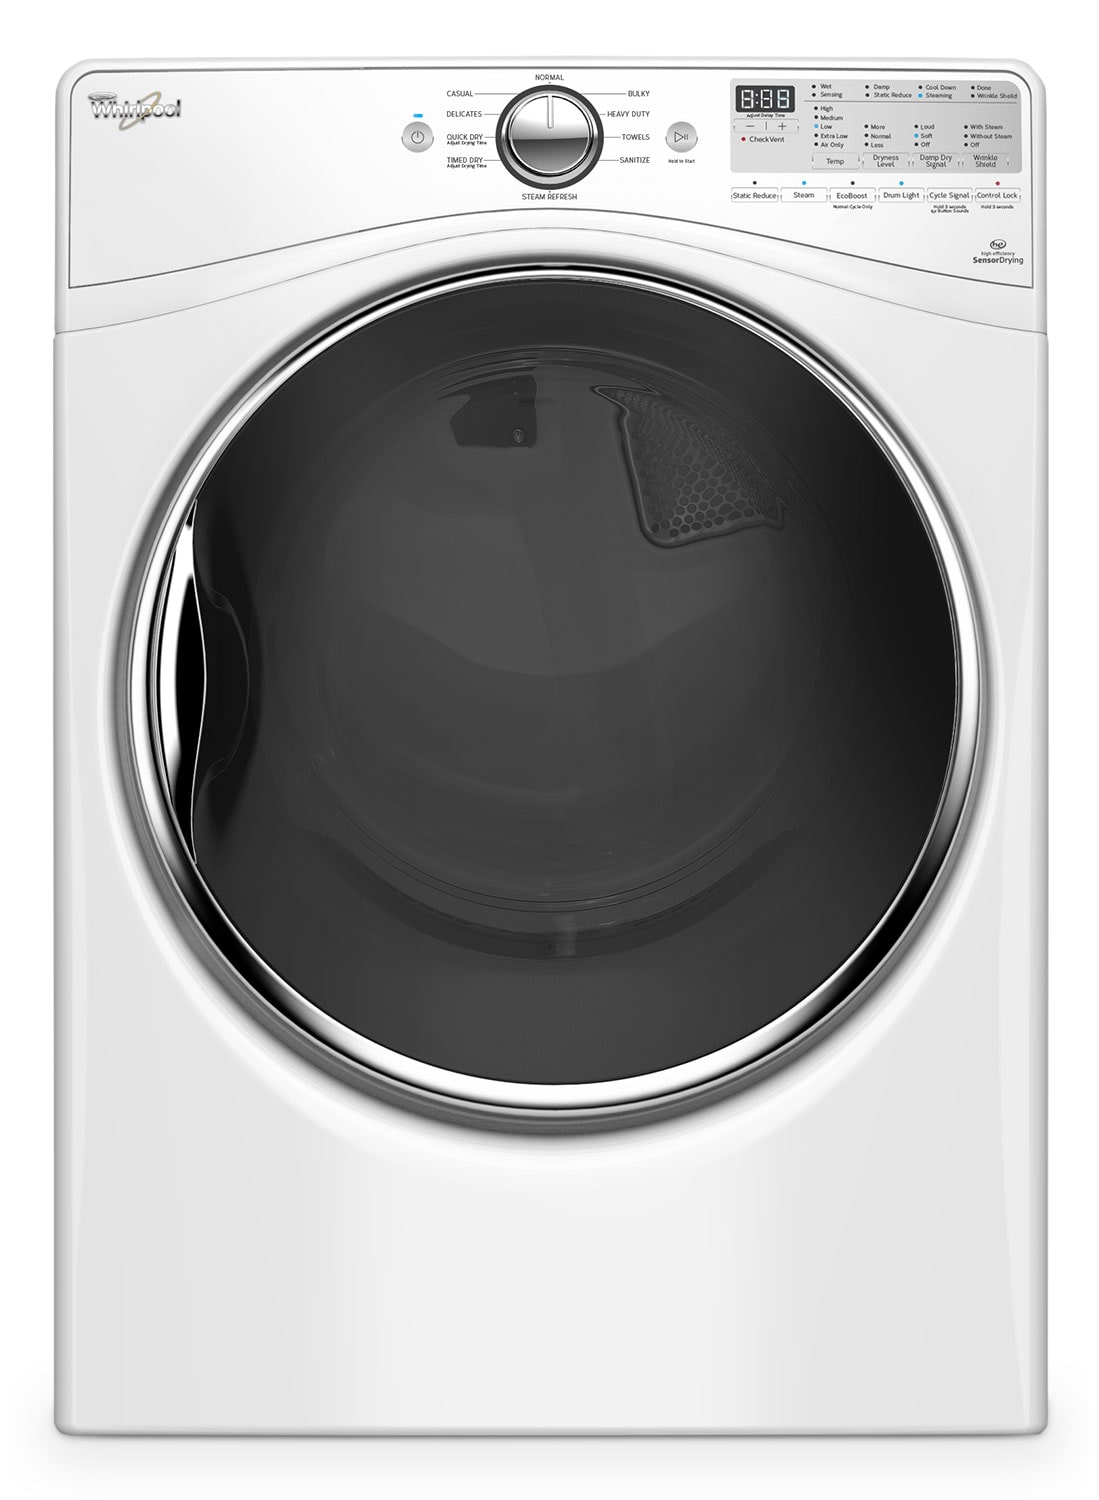 Whirpool White Electric Dryer (7.4 Cu. Ft.) - YWED92HEFW